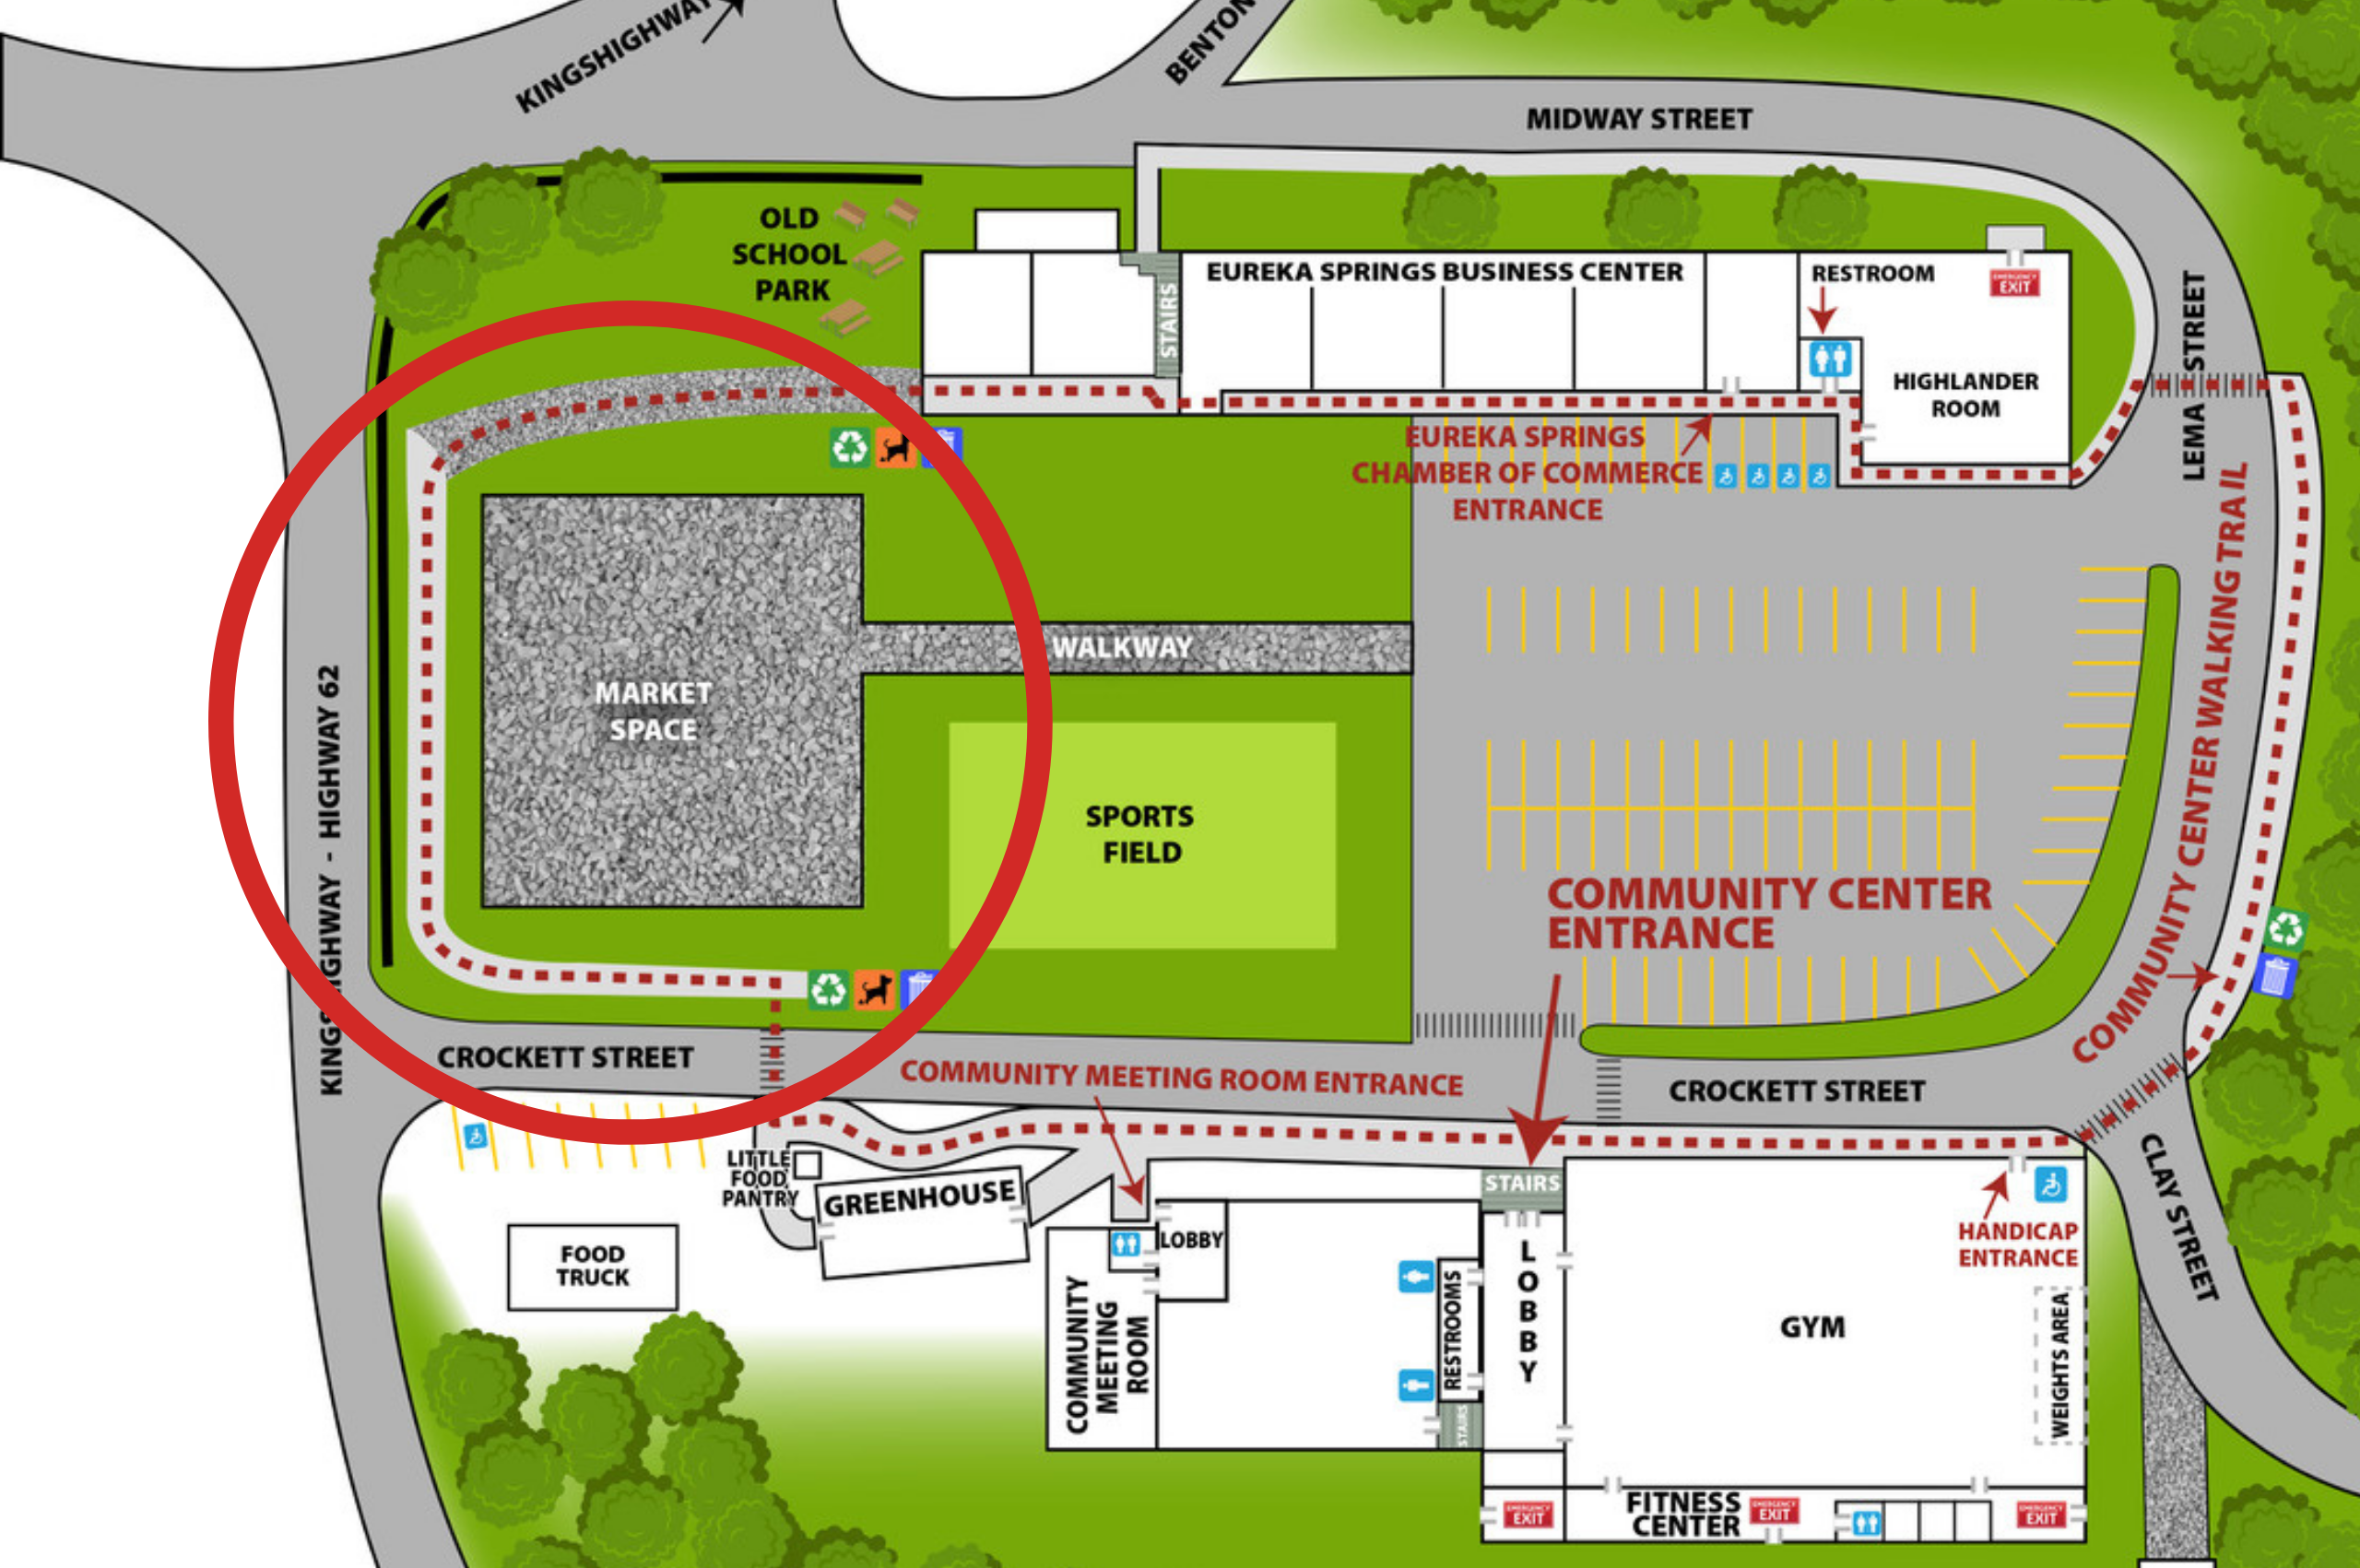 Campus Map with Market Space circled